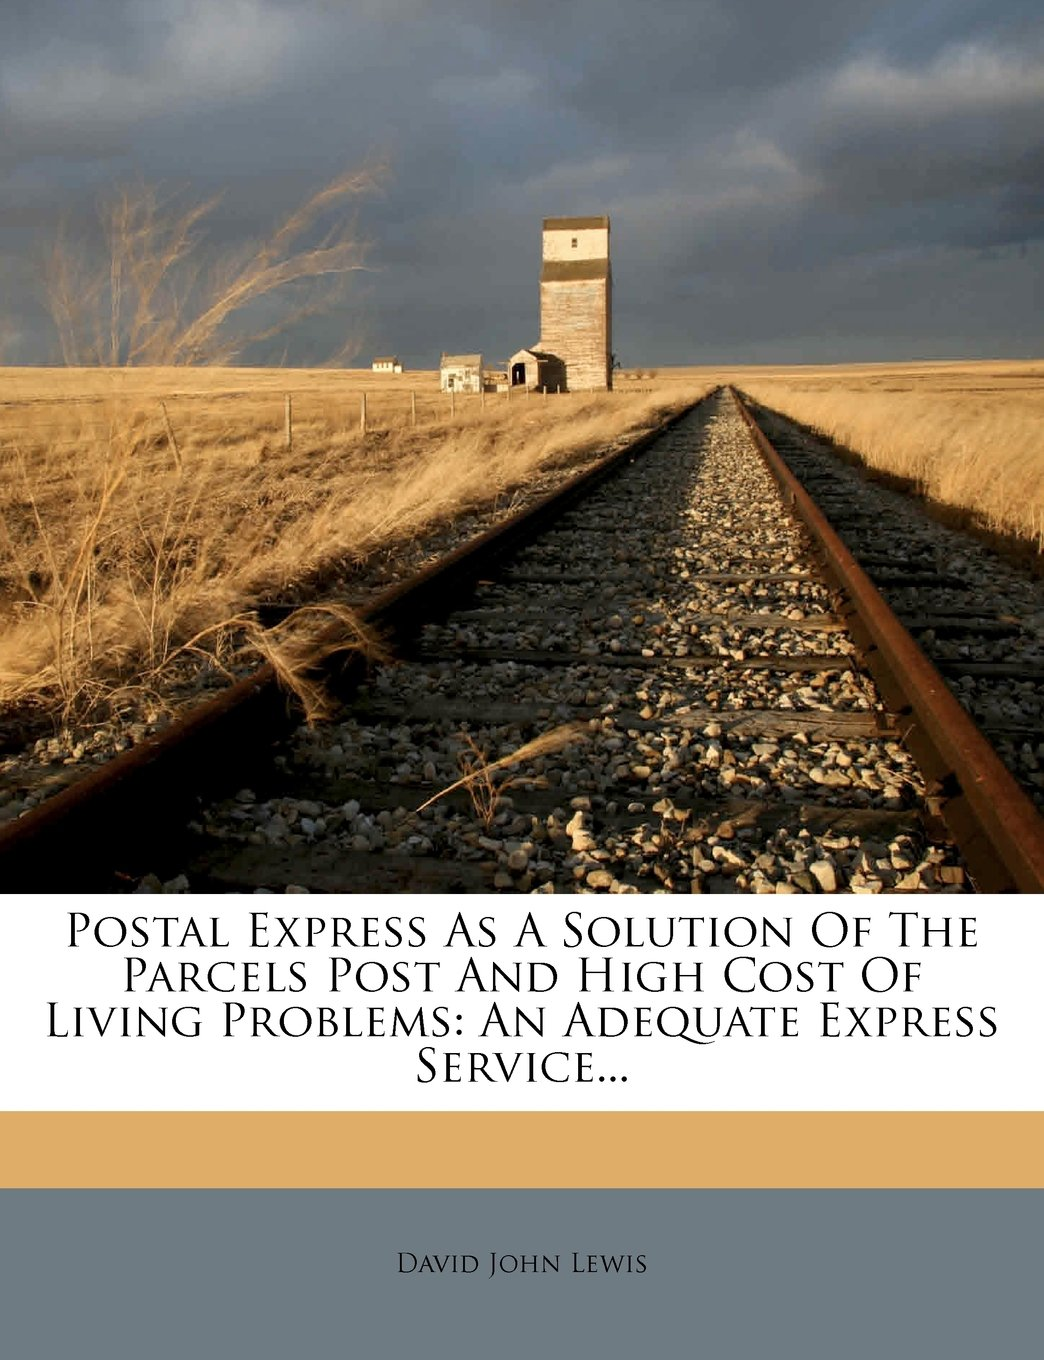 Read Online Postal Express As A Solution Of The Parcels Post And High Cost Of Living Problems: An Adequate Express Service... PDF